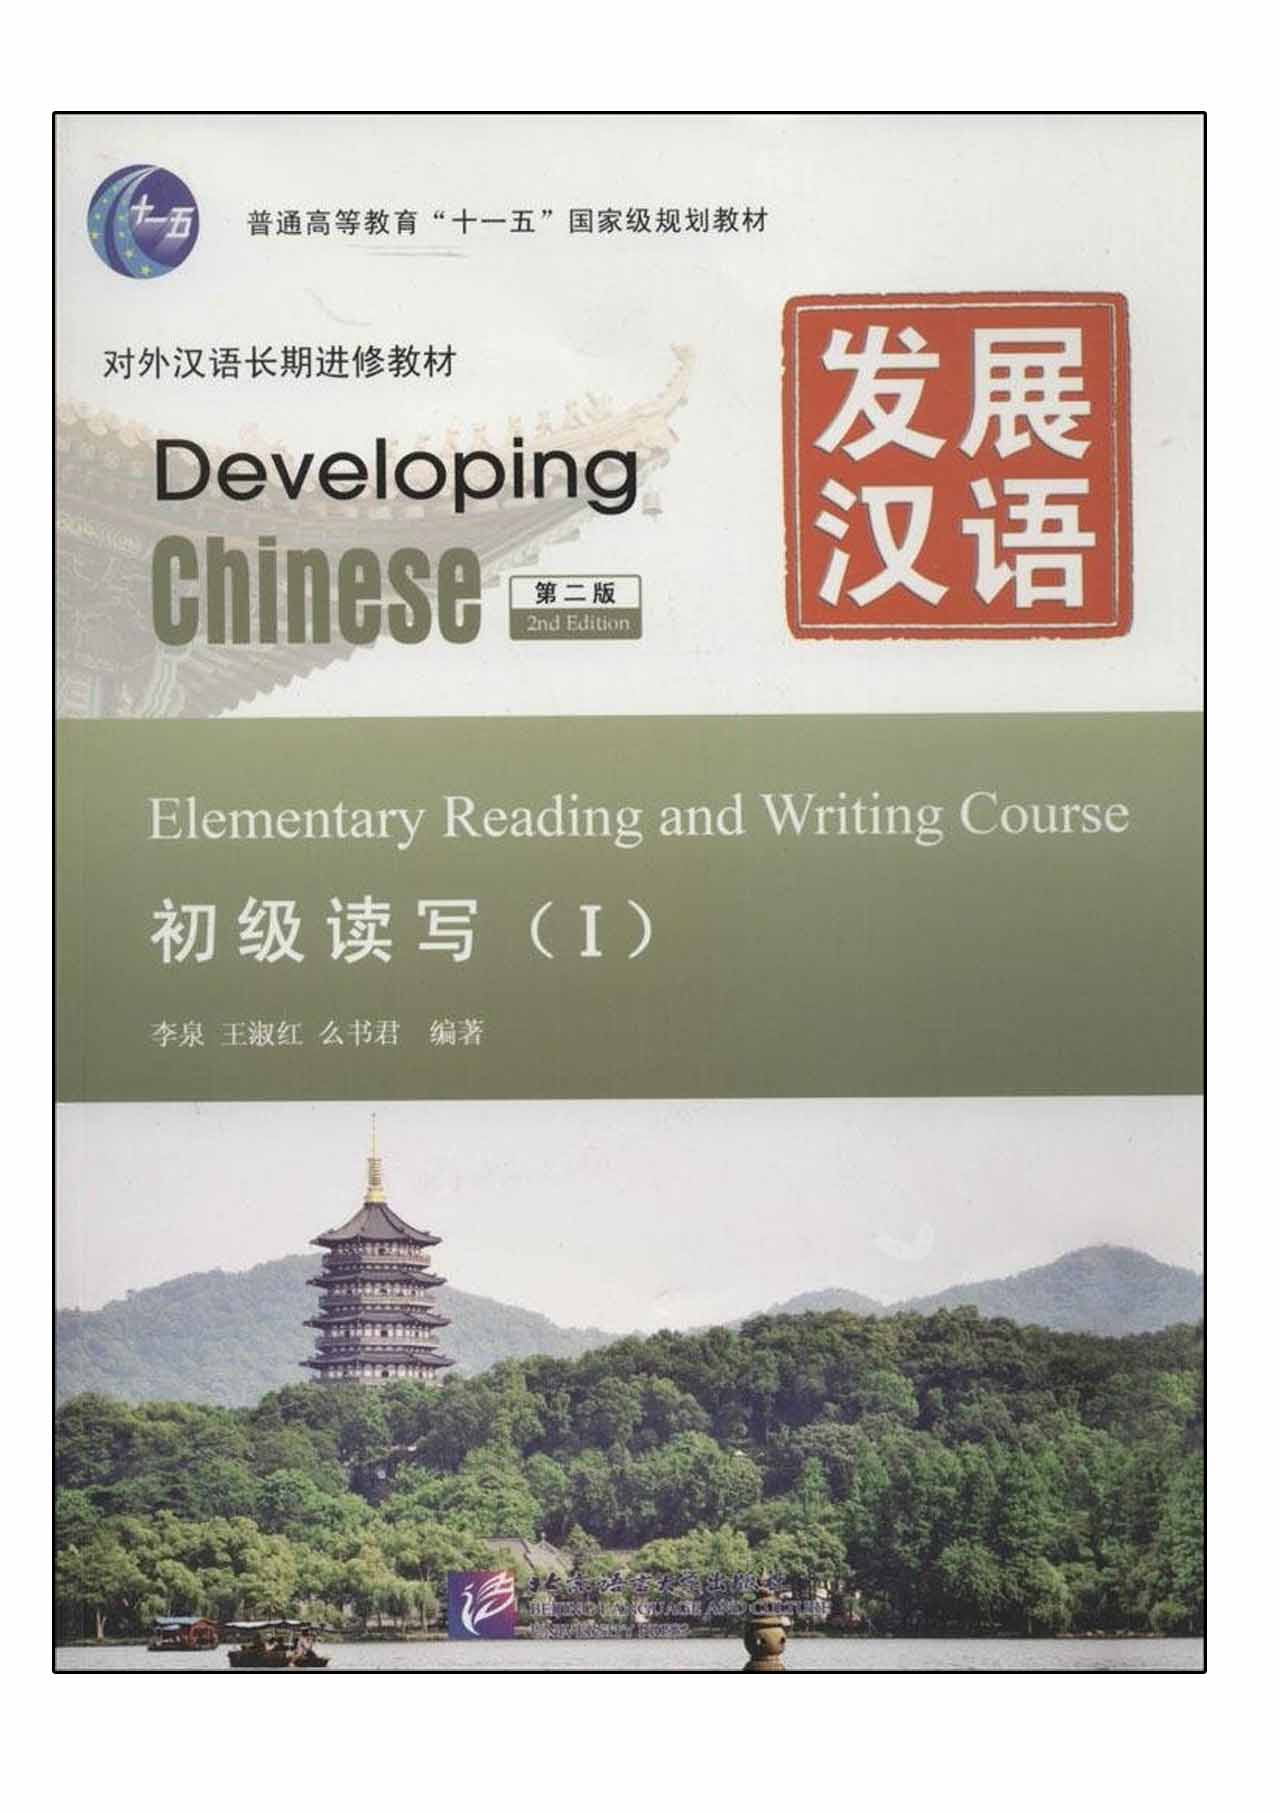 发展汉语(第2版)初级读写(Ⅰ)(含1MP3)Developing Chinese (2nd Edition) Elementary Reading and Writing Course Ⅰ+MP3